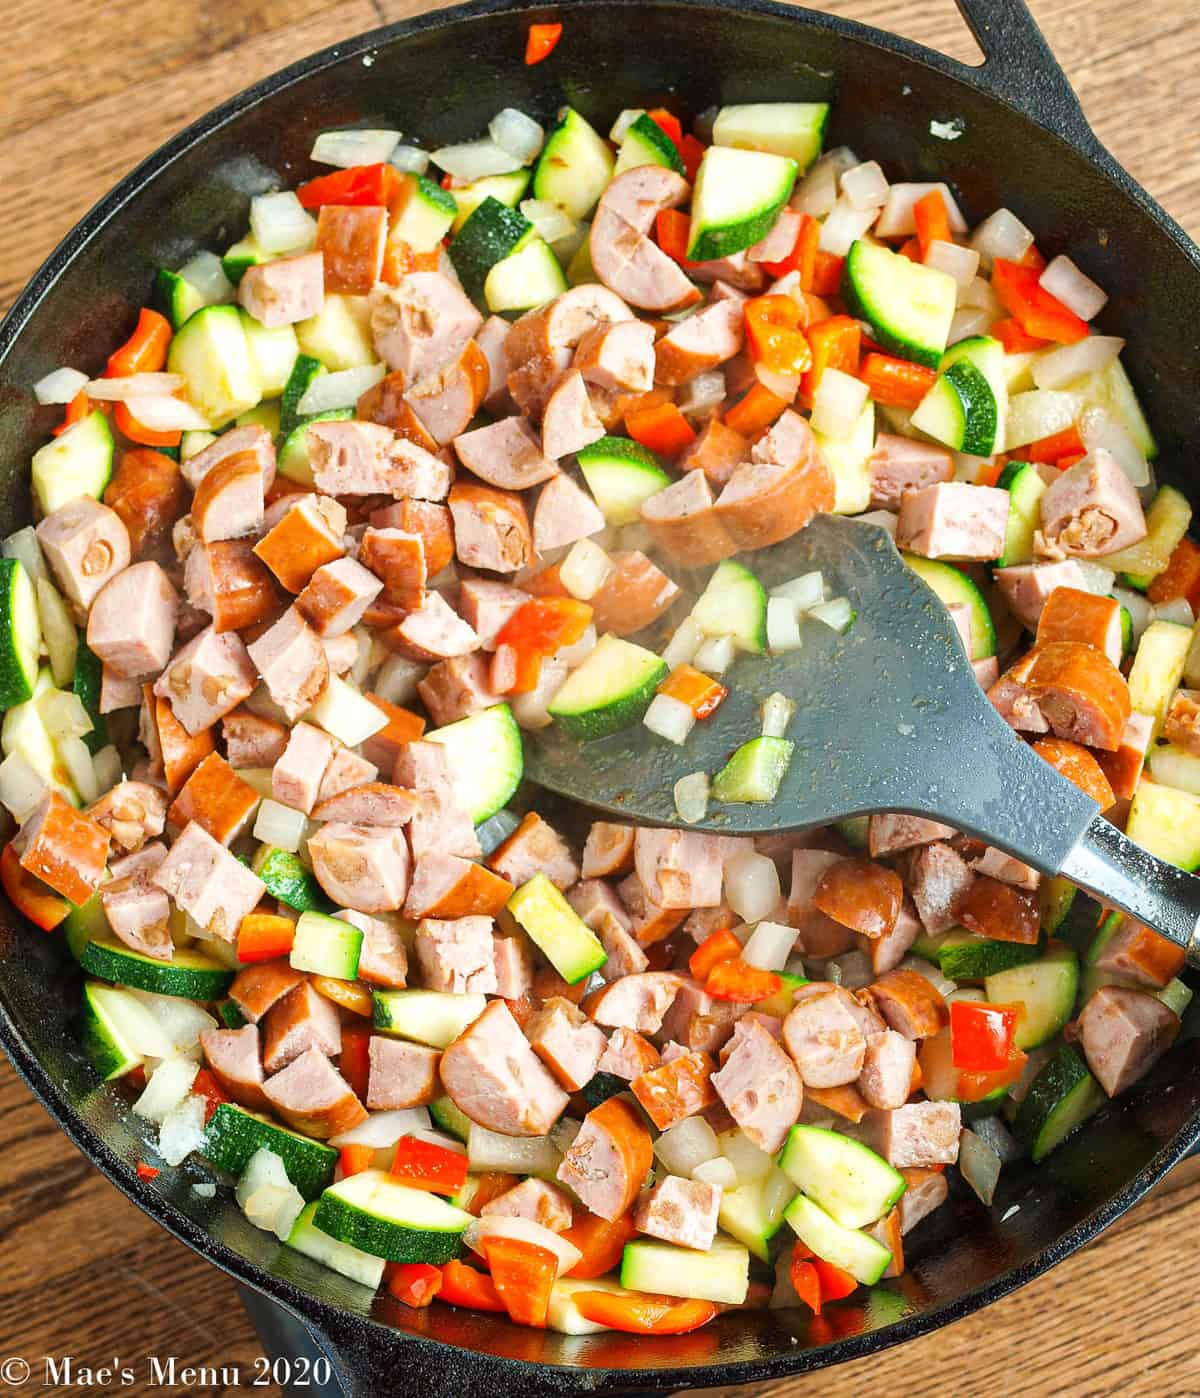 A cast iron skillet with cubed sausages, peppers, zucchini, and onion in it